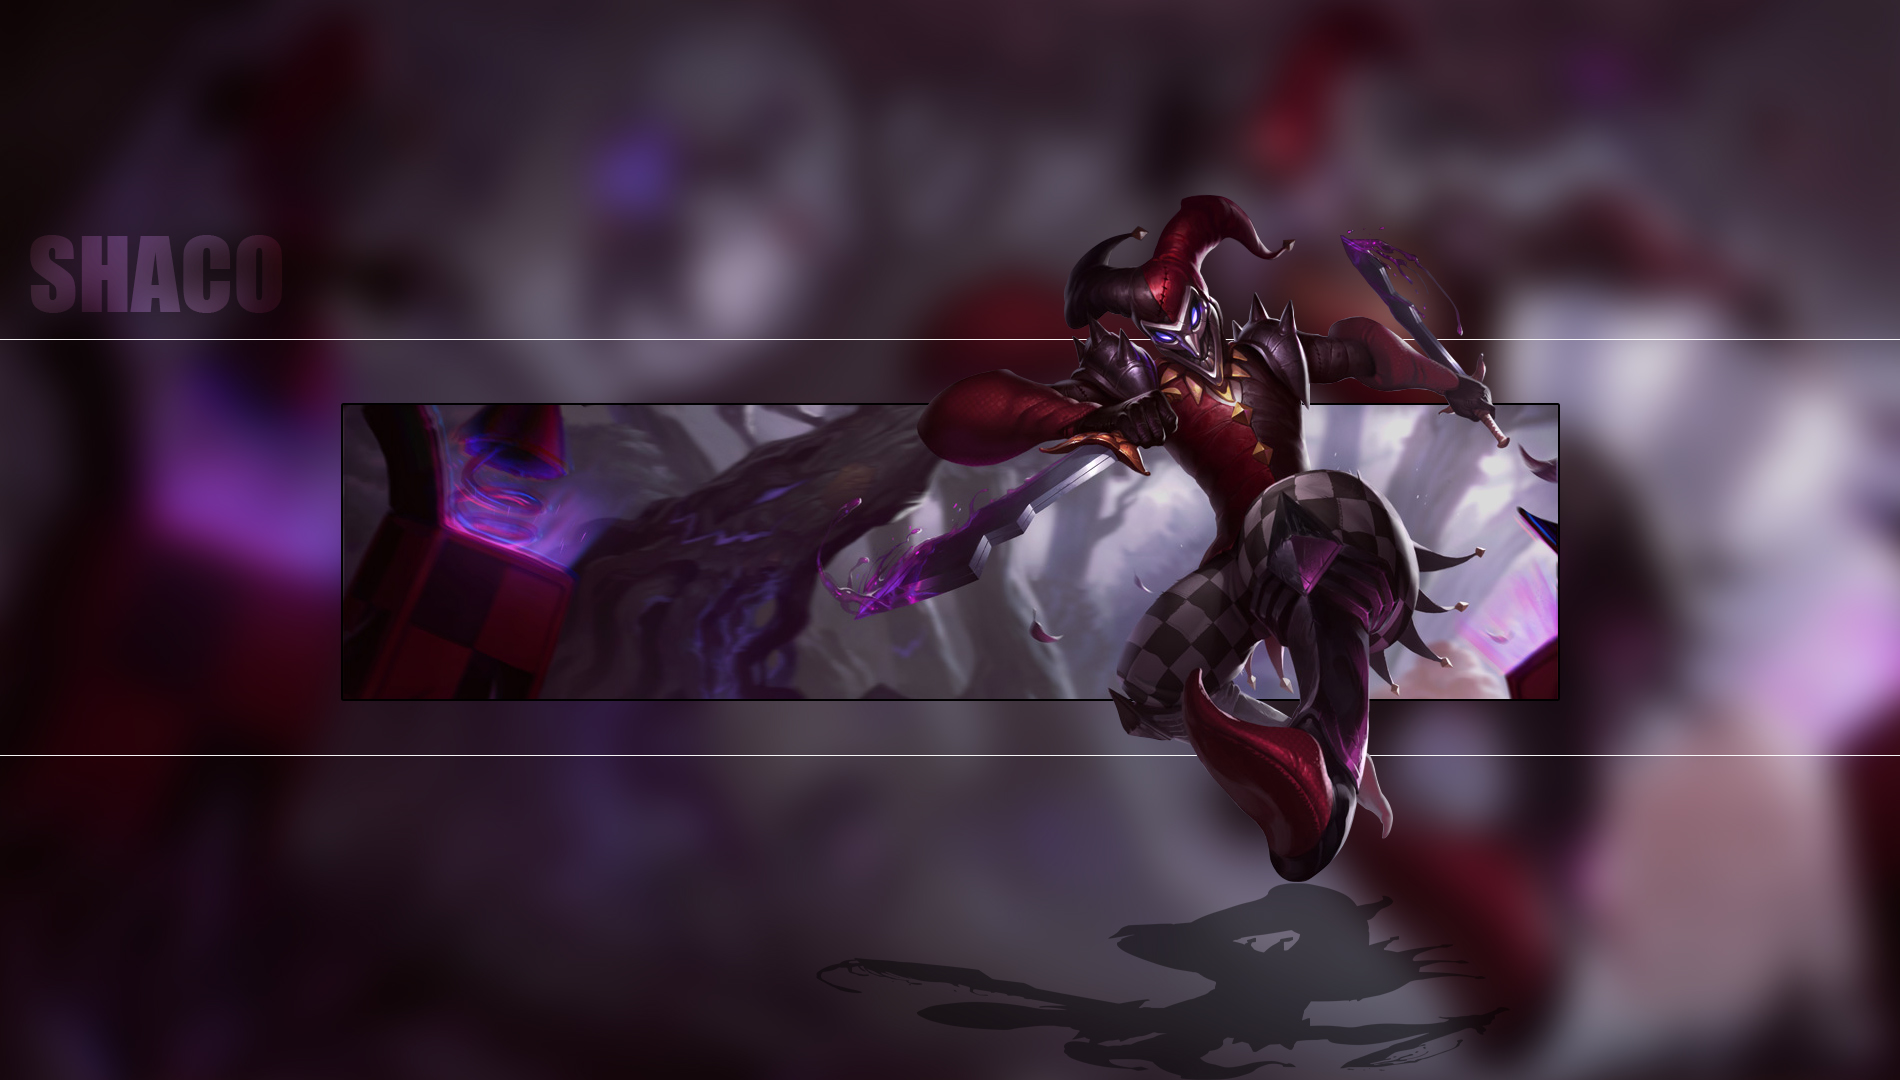 Shaco wallpaper and background image 1900x1080 id702942 video game league of legends shaco league of legends wallpaper voltagebd Gallery